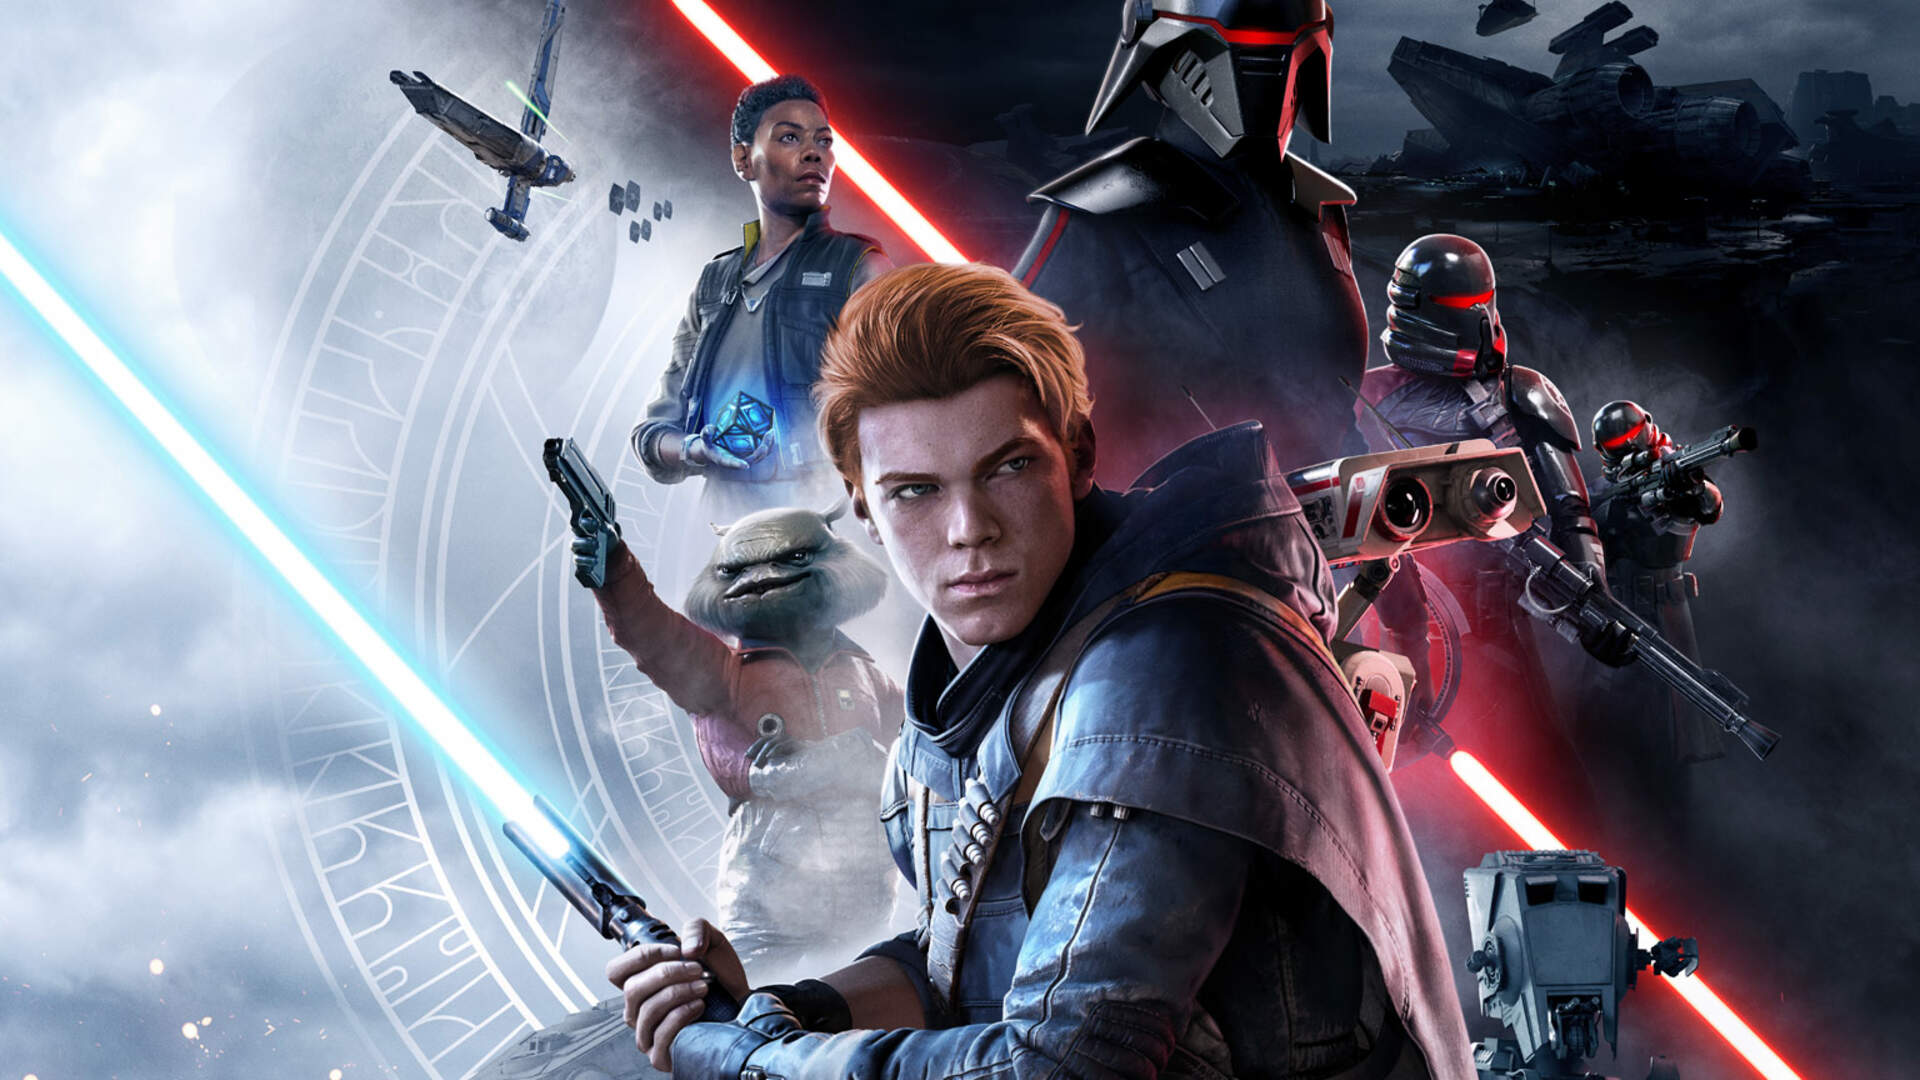 Star Wars Jedi: Fallen Order Demo Showcases AT-AT Vehicle Sequence